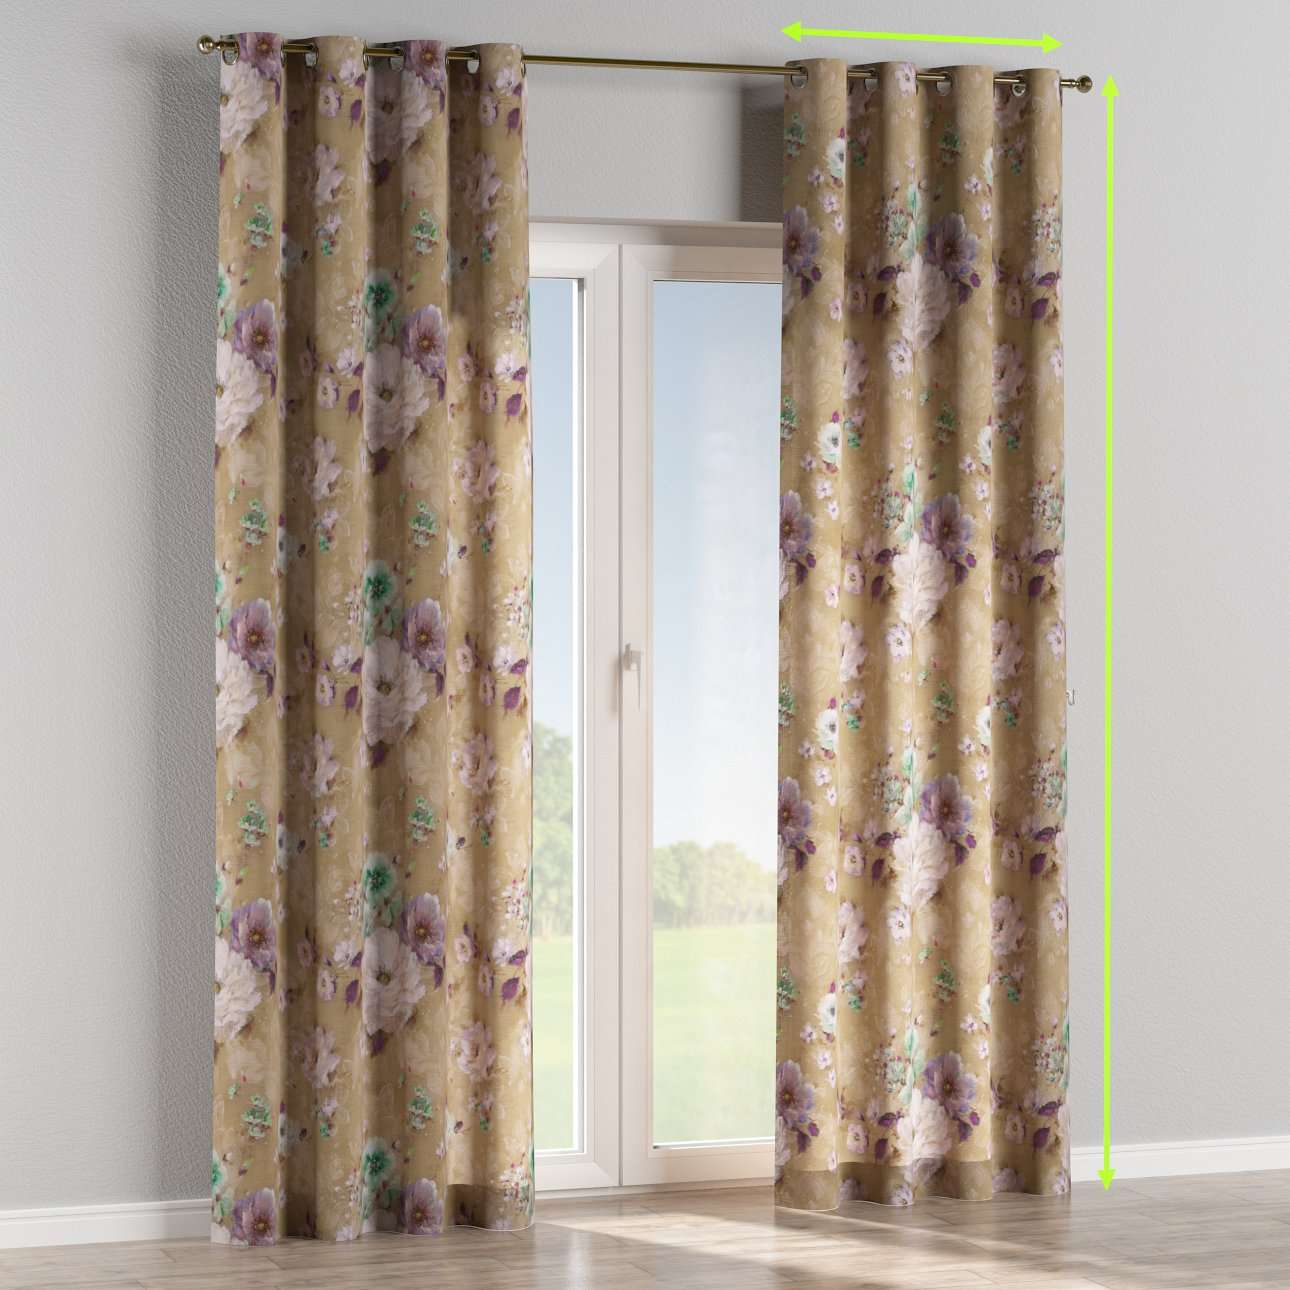 Eyelet curtains in collection Monet, fabric: 137-82